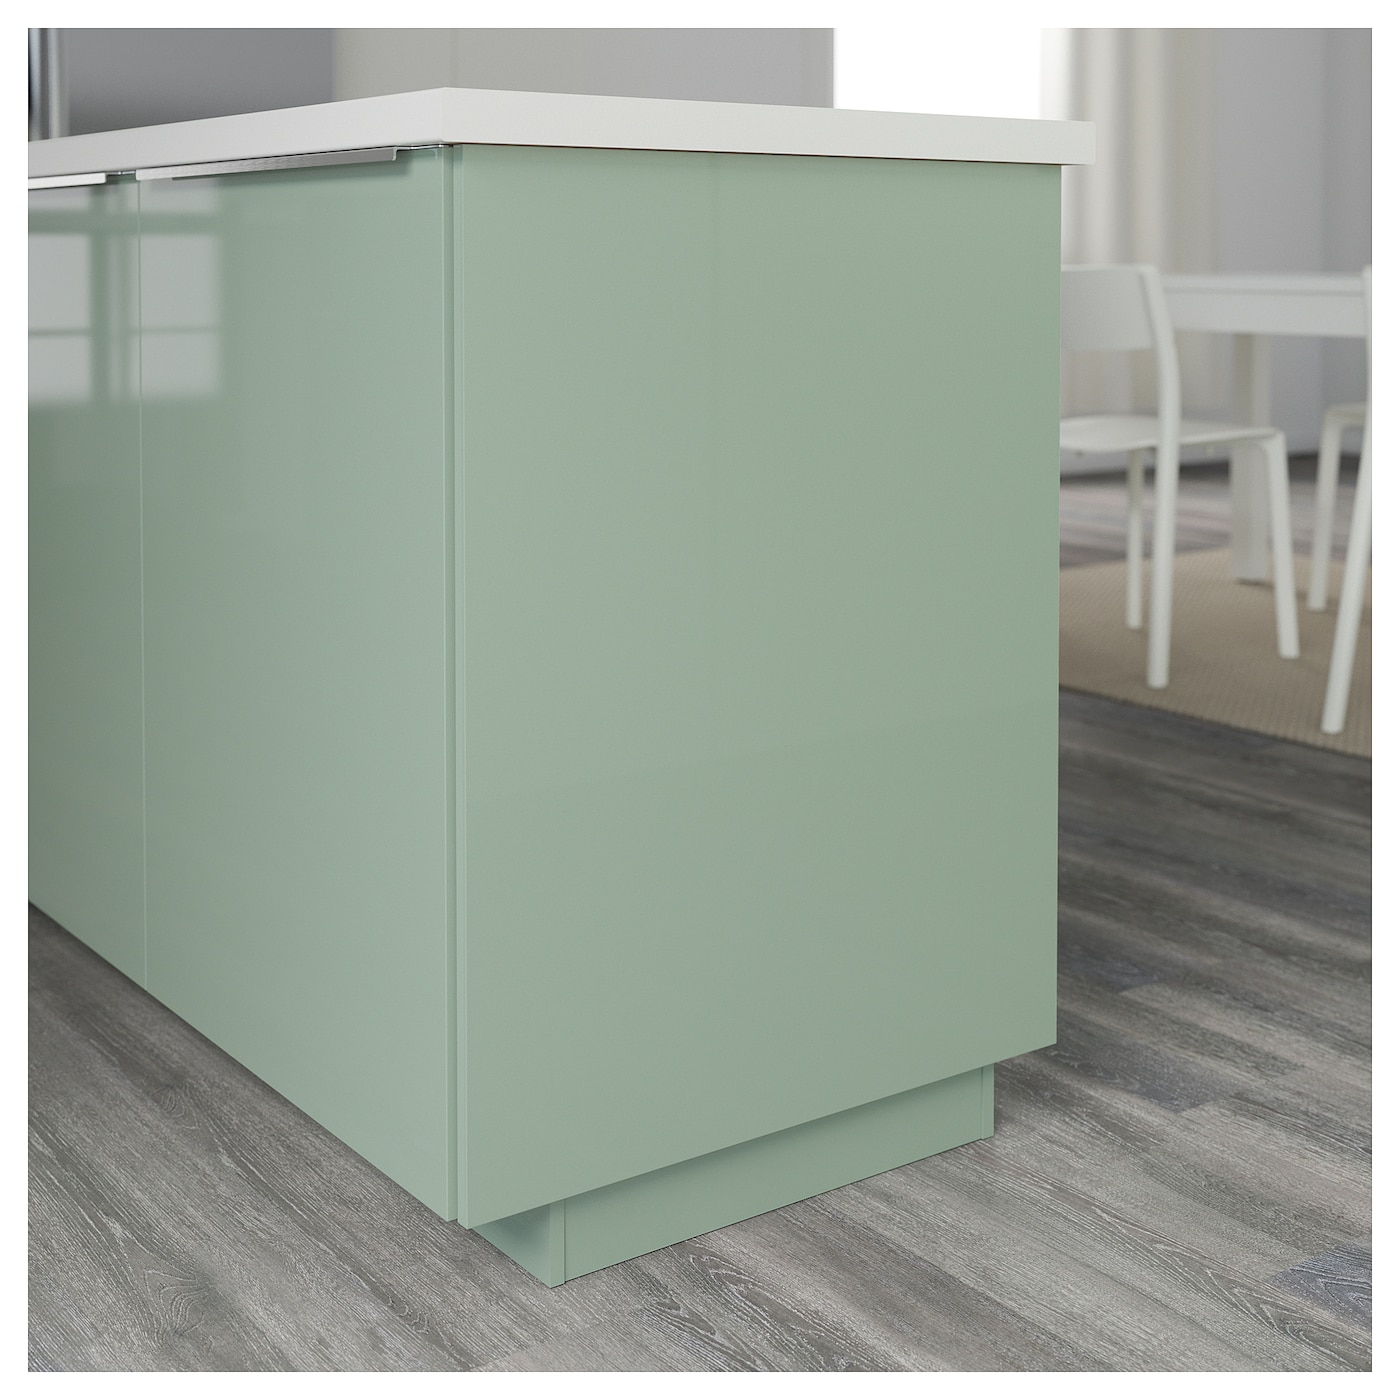 kallarp cover panel high gloss light green 62x220 cm ikea. Black Bedroom Furniture Sets. Home Design Ideas